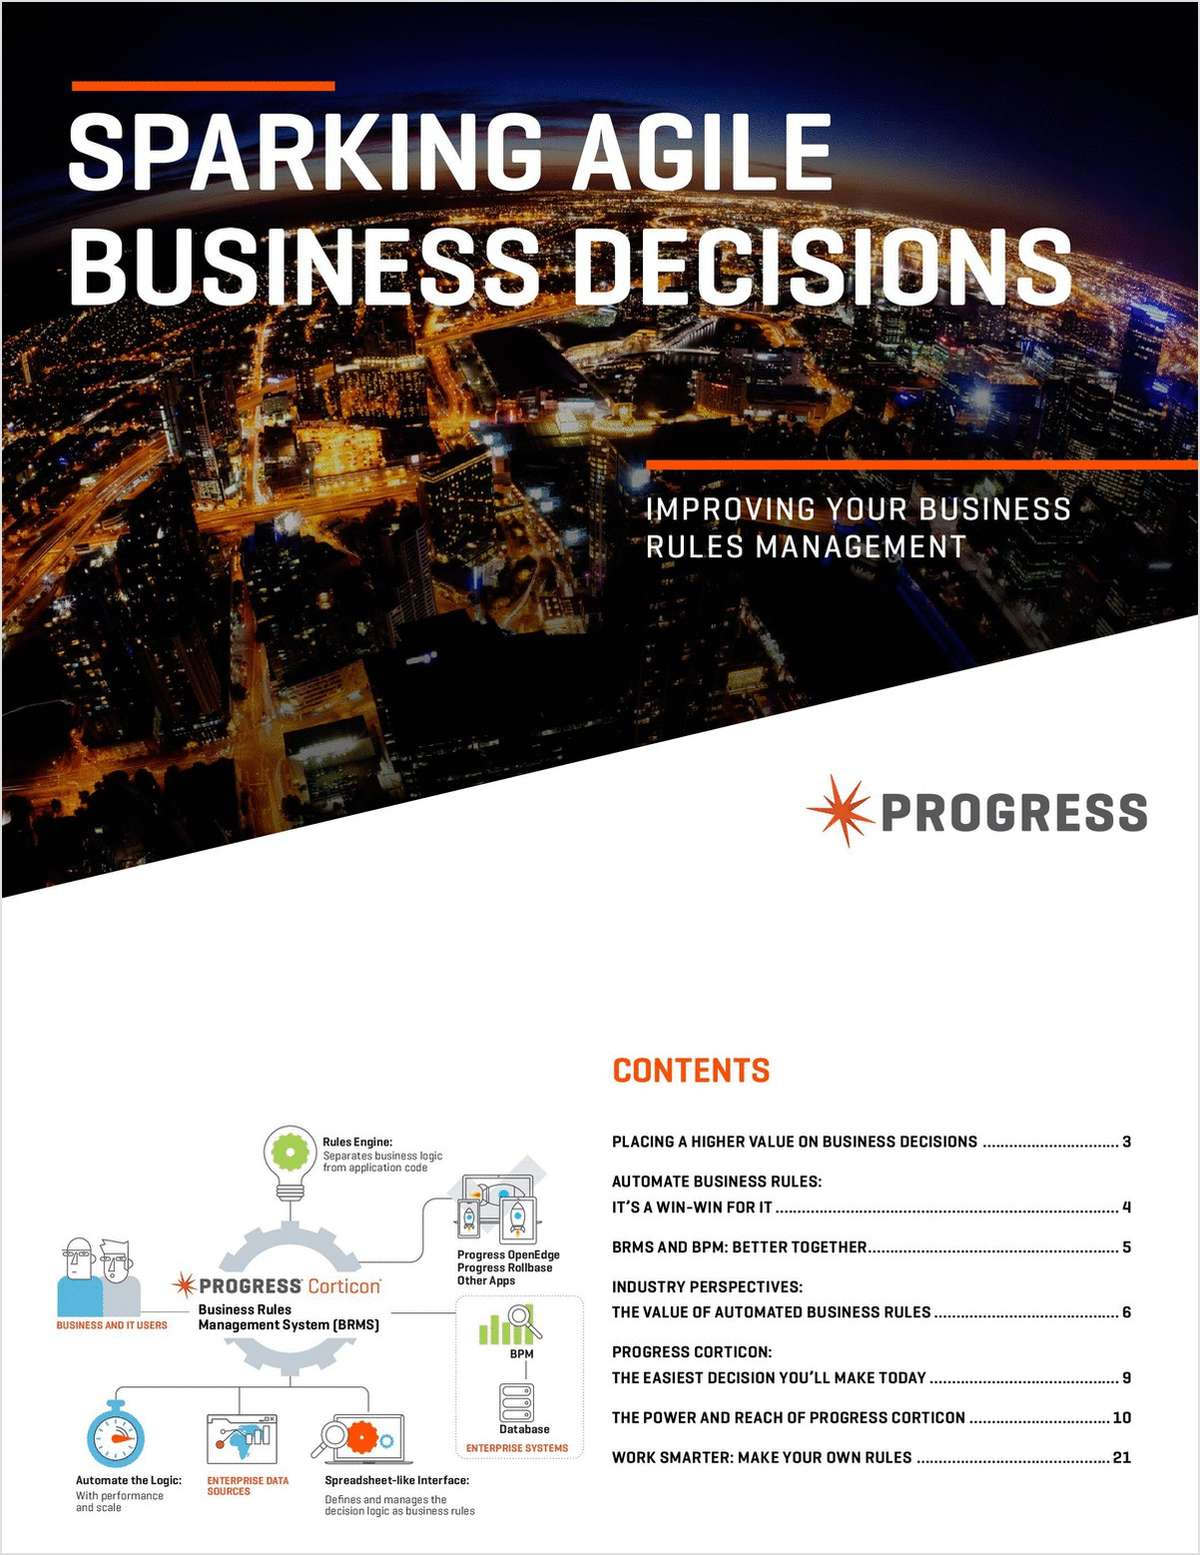 Sparking Agile Business Decisions Improving your Business Rules Management